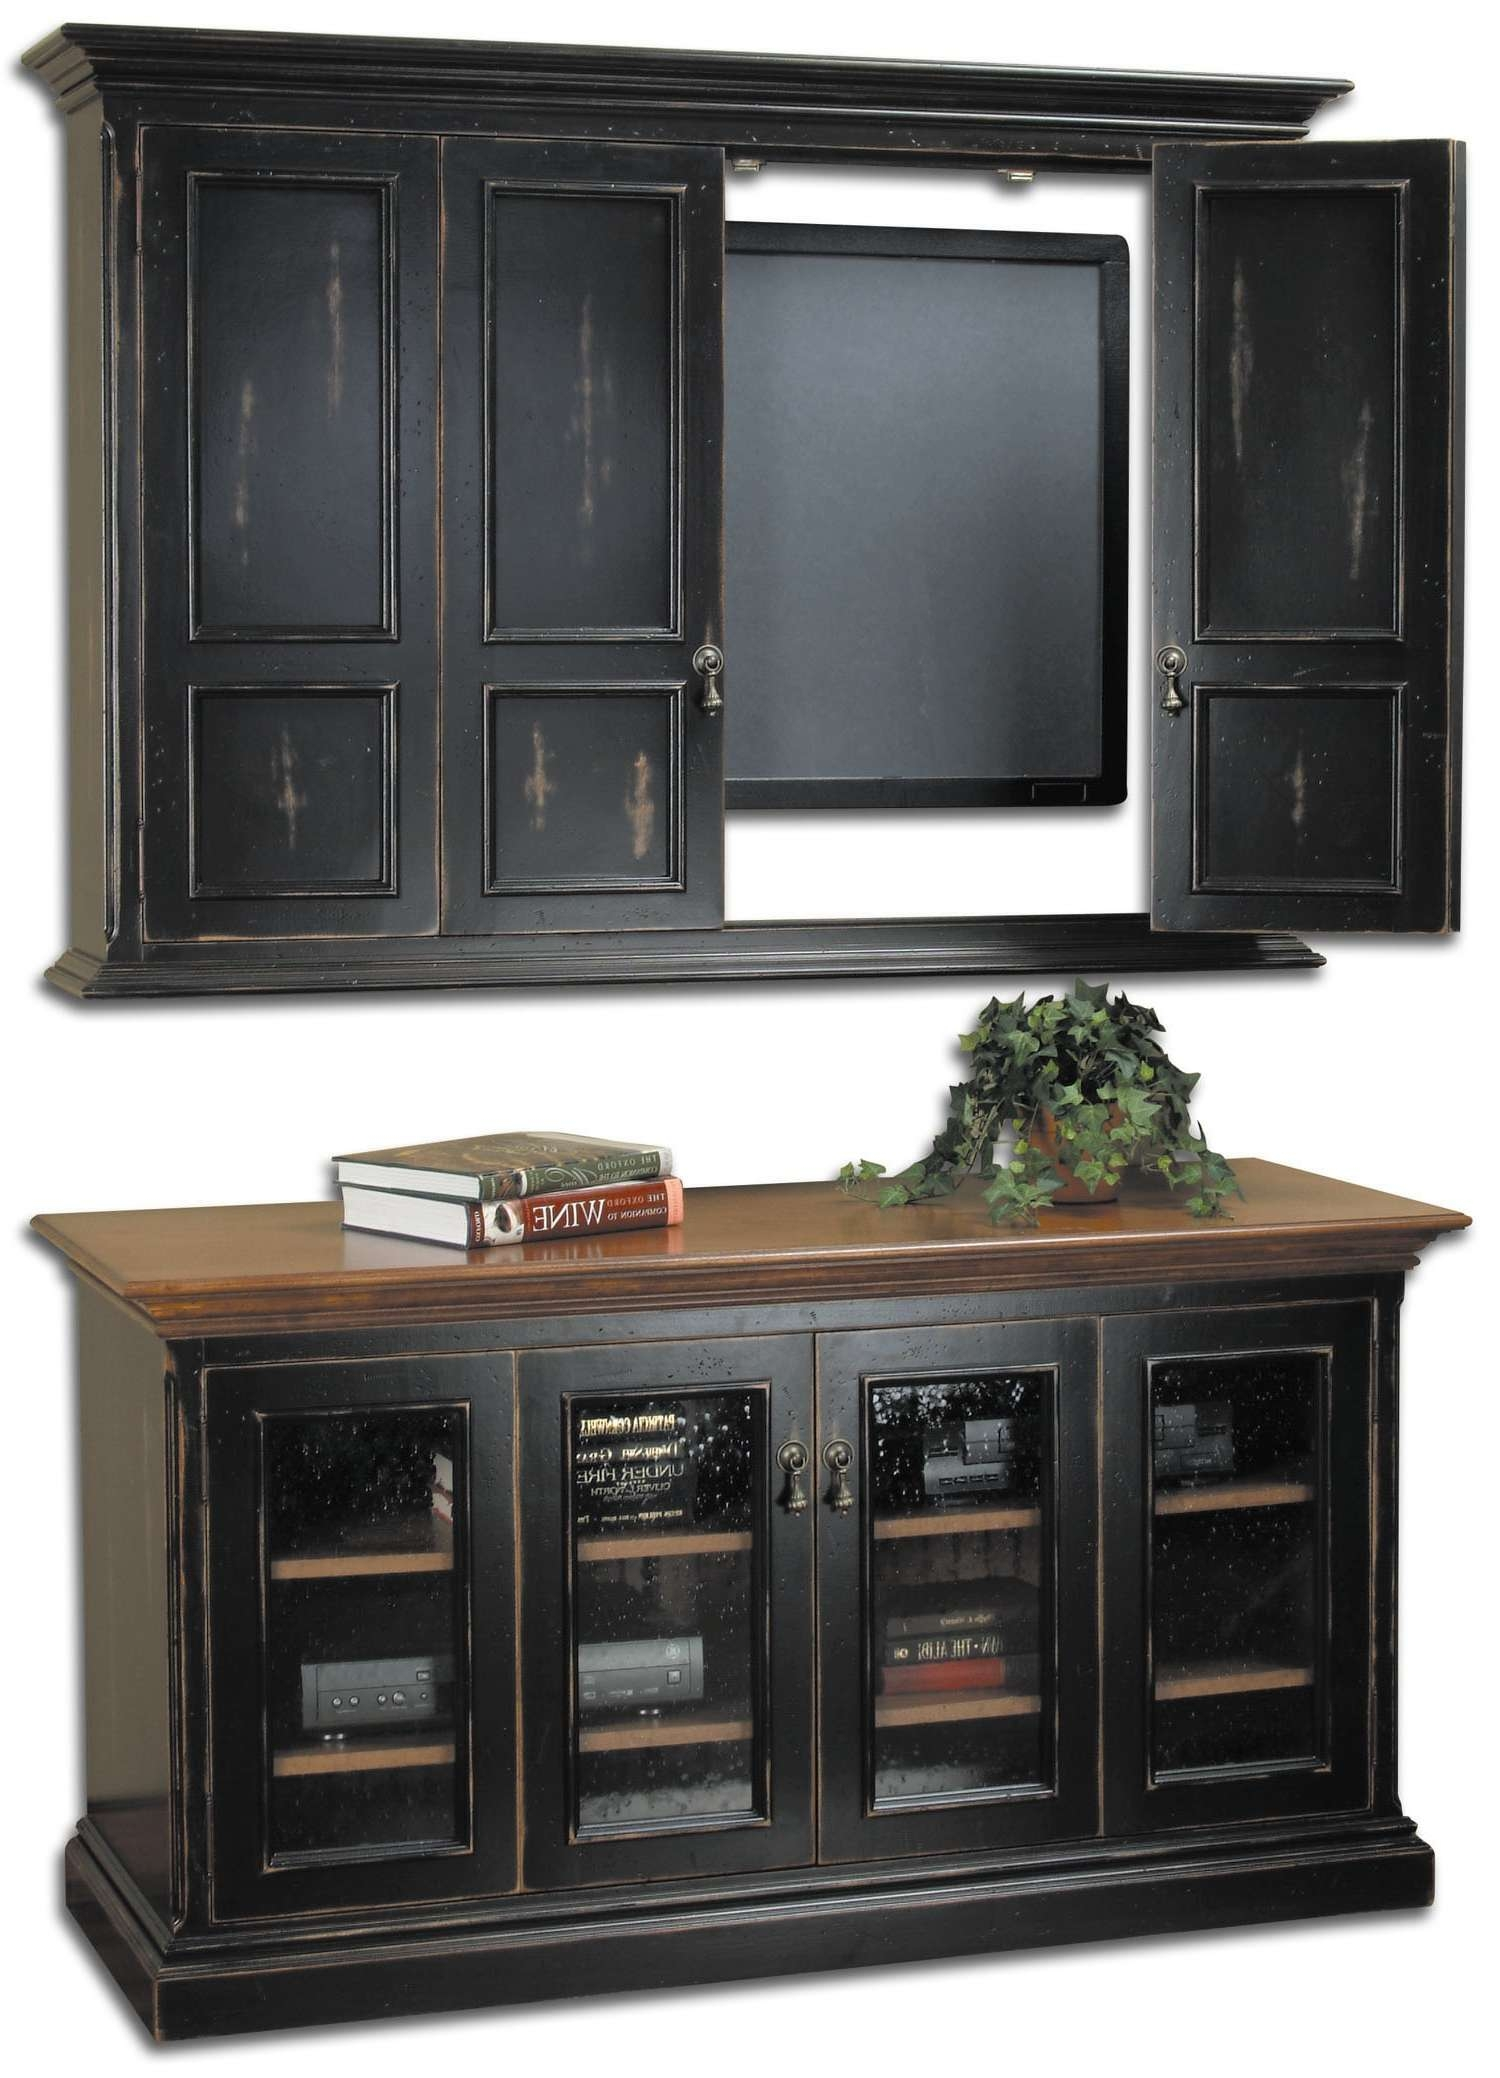 View Gallery Of Wall Mounted Tv Cabinets With Sliding Doors Showing